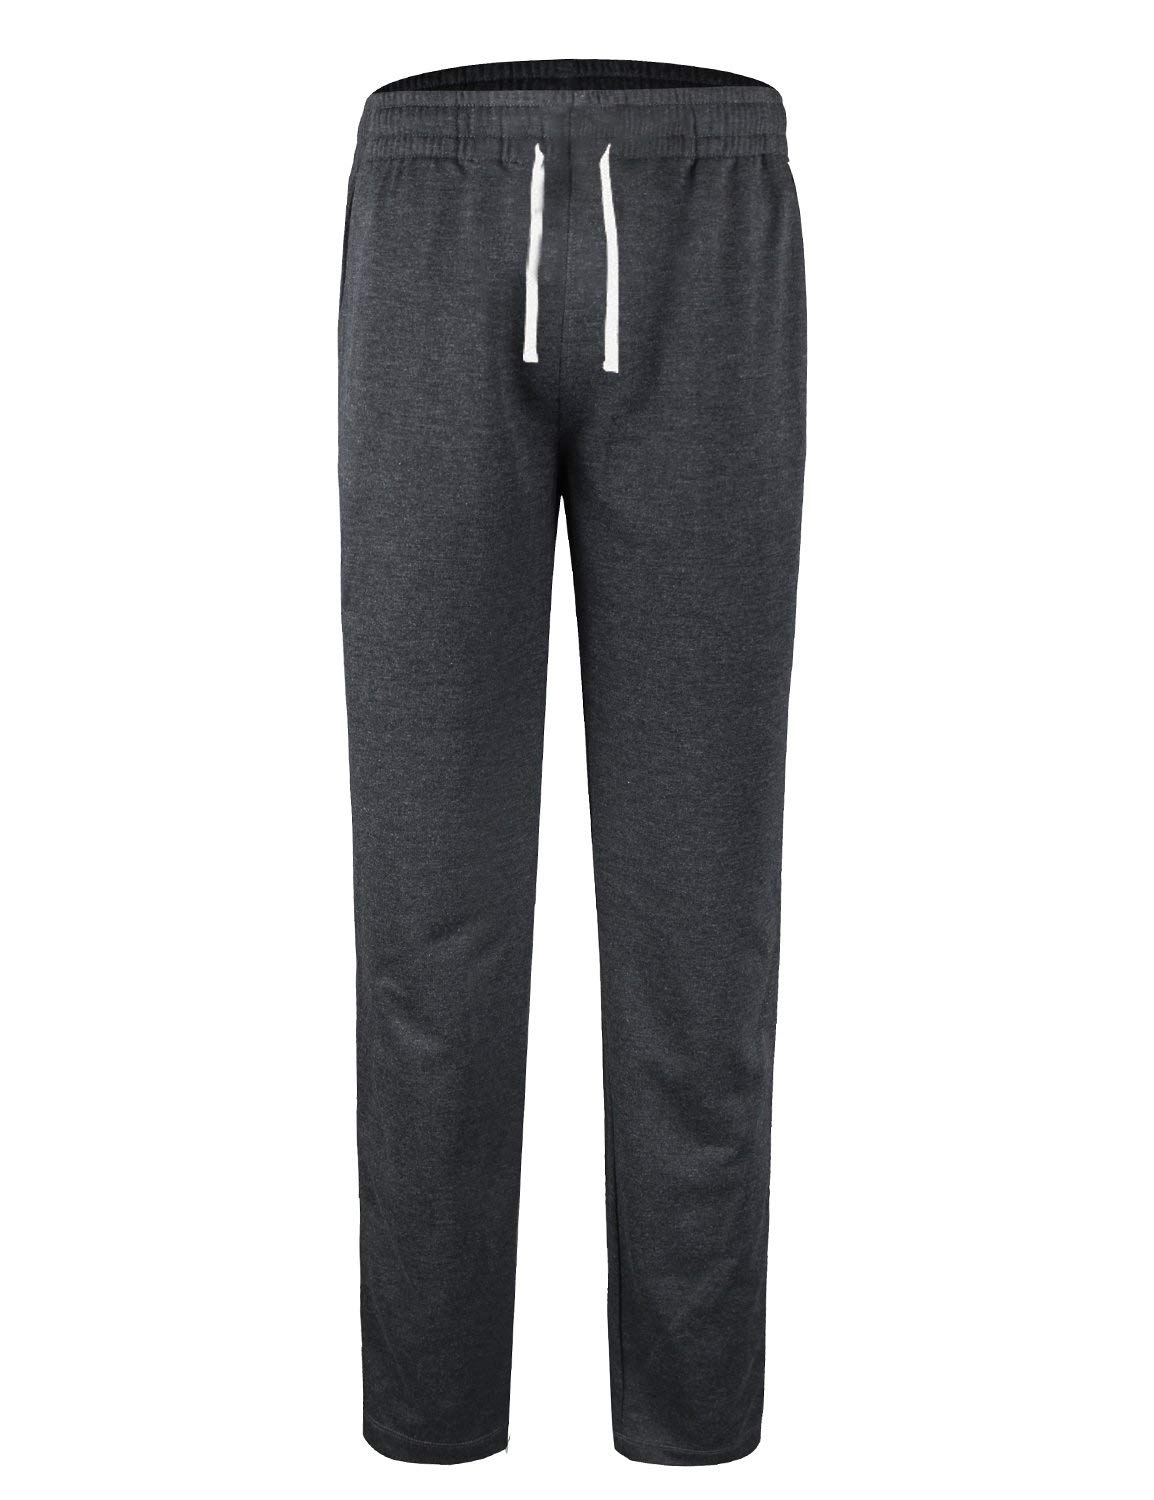 BALEAF Youth Boys' Athletic Pants Tapered Leg Running Sweatpants Dark Gray Size XS by BALEAF